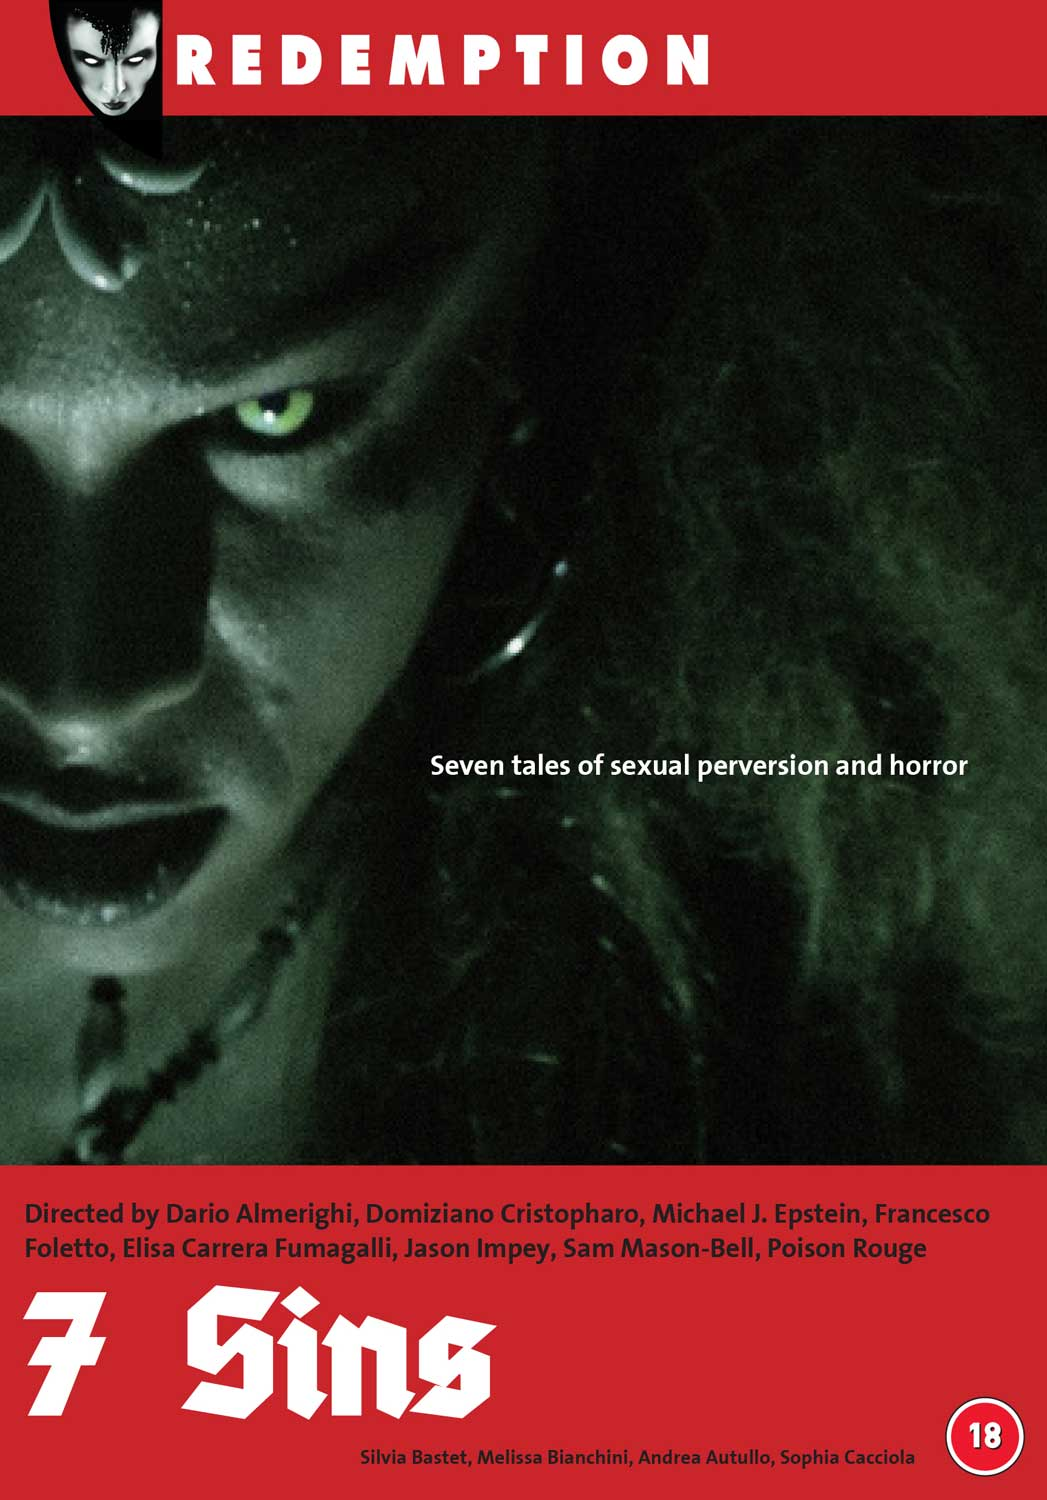 Stream erotic horror anthology 7 Sins on Redemption TV